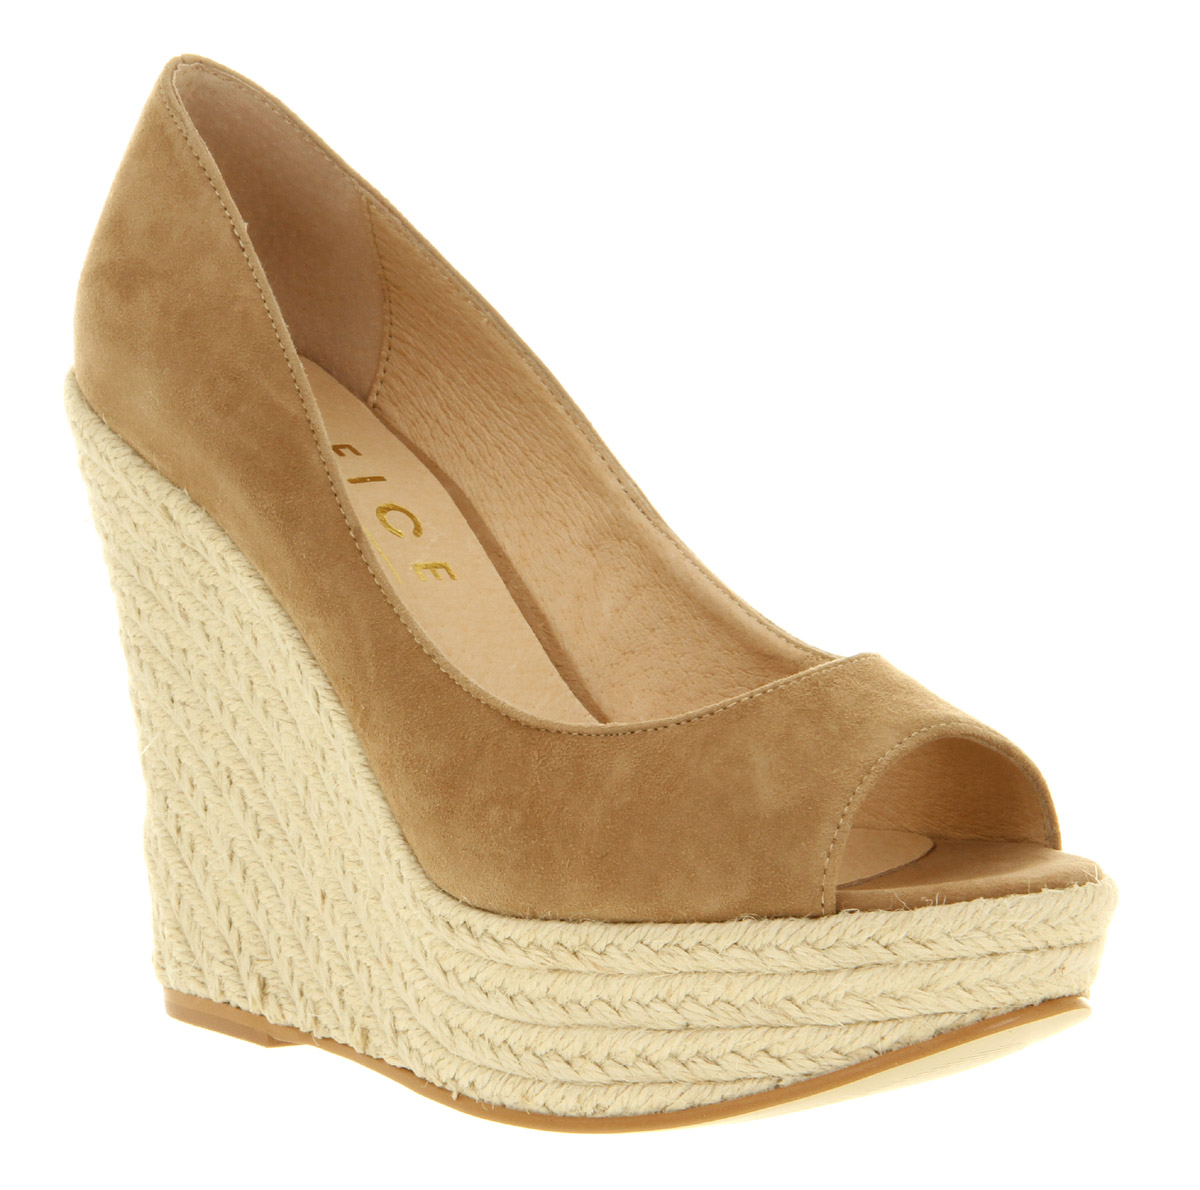 Doting fashionistas will agree, this covered wedge sling with perf detailing is inspiring